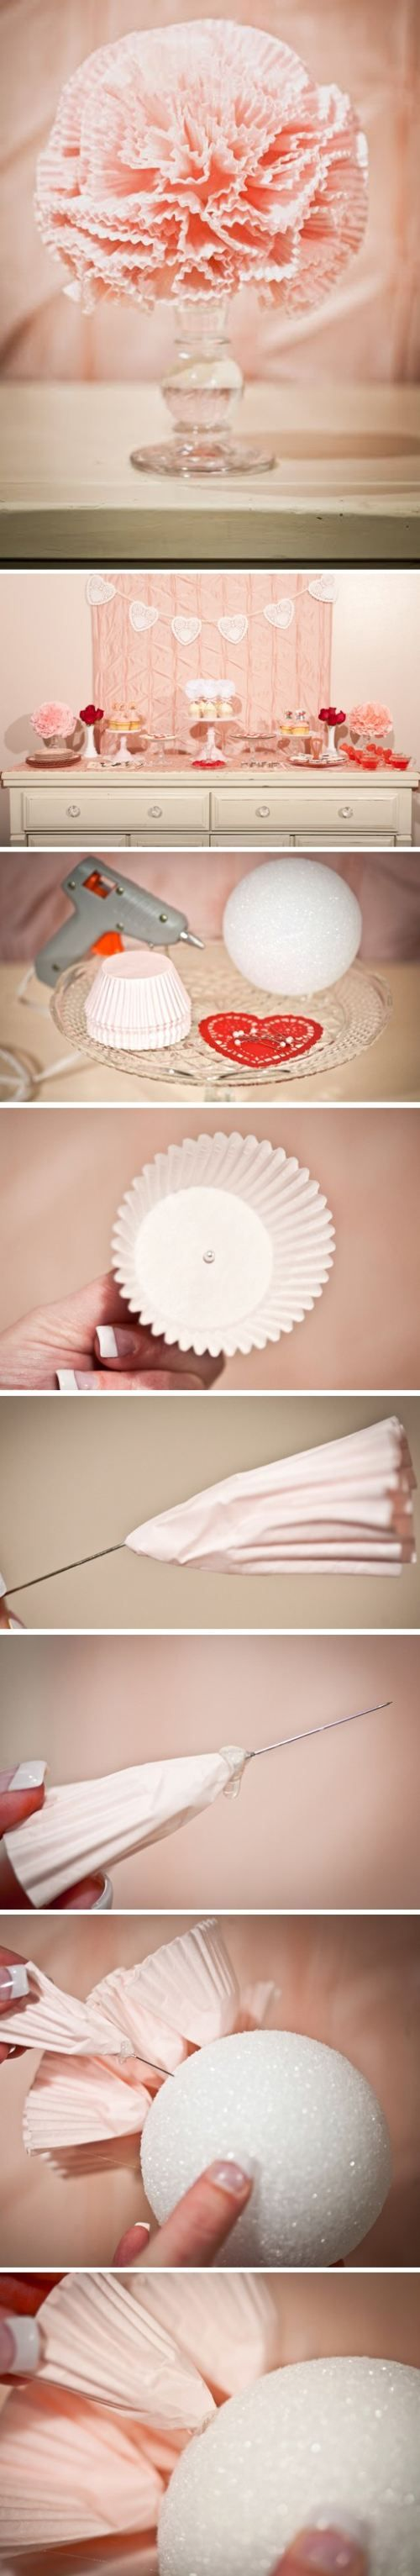 DIY crafts - cupcake liner balls